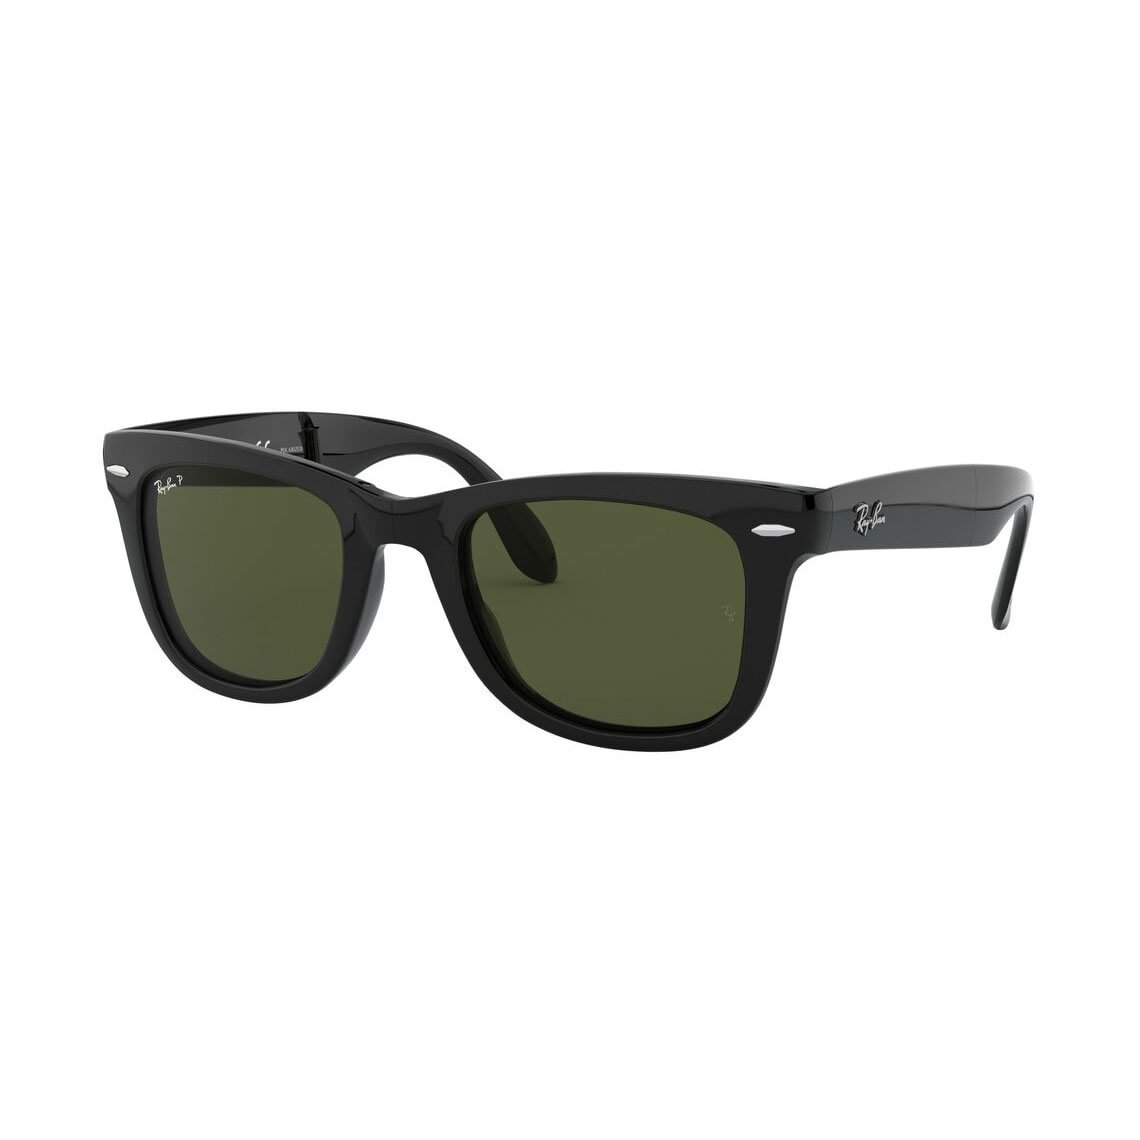 Ray-Ban Wayfarer folding RB4105 601/58 50